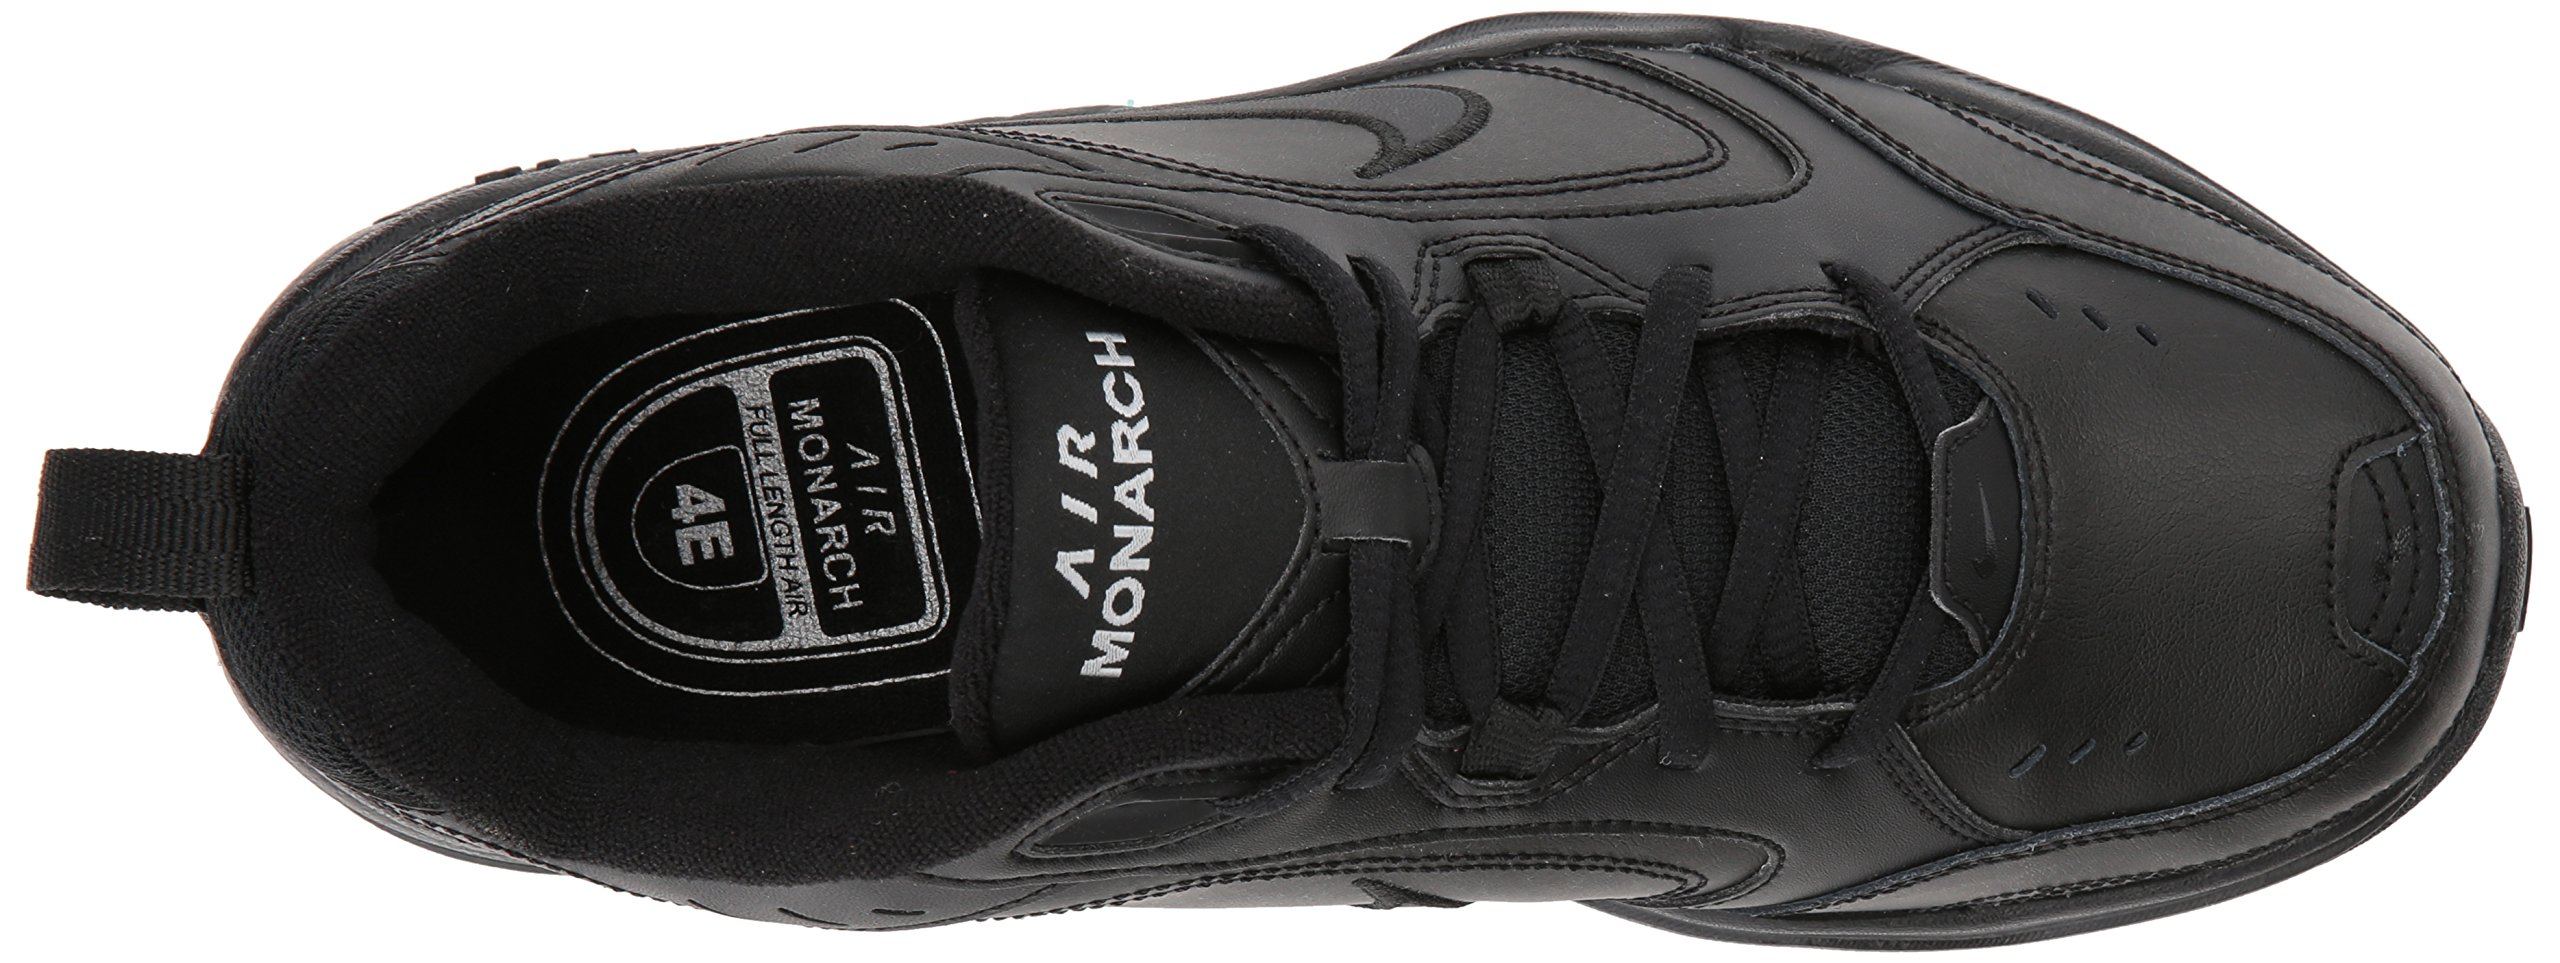 NIKE AIR MONARCH IV (MENS) - 6 Black/Black by Nike (Image #14)